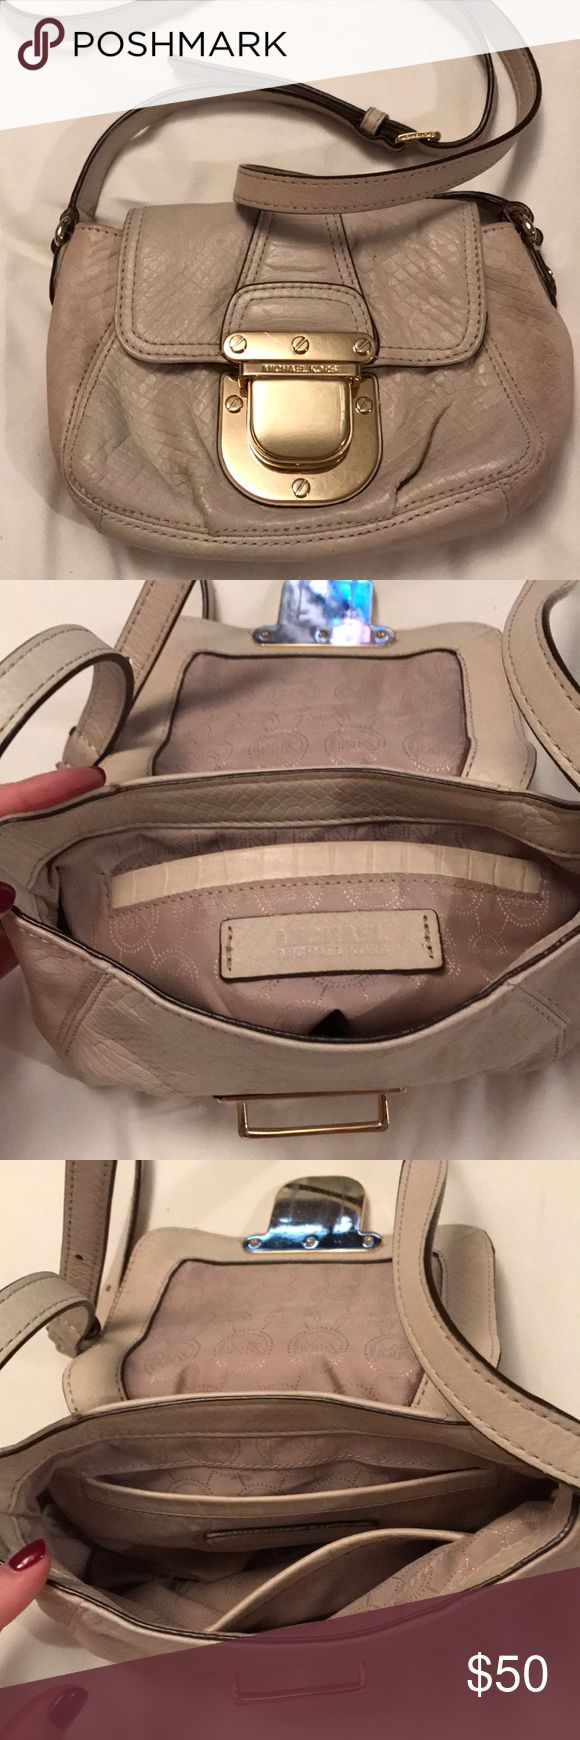 MICHAEL KORS cross body purse Gently used leather crossbody purse! Spacious to fit an iPhone plus size and a few cosmetics for a night out. Long crossbody straps for comfort and security! $50 OBO. Thanks for looking! Michael Kors Bags Crossbody Bags